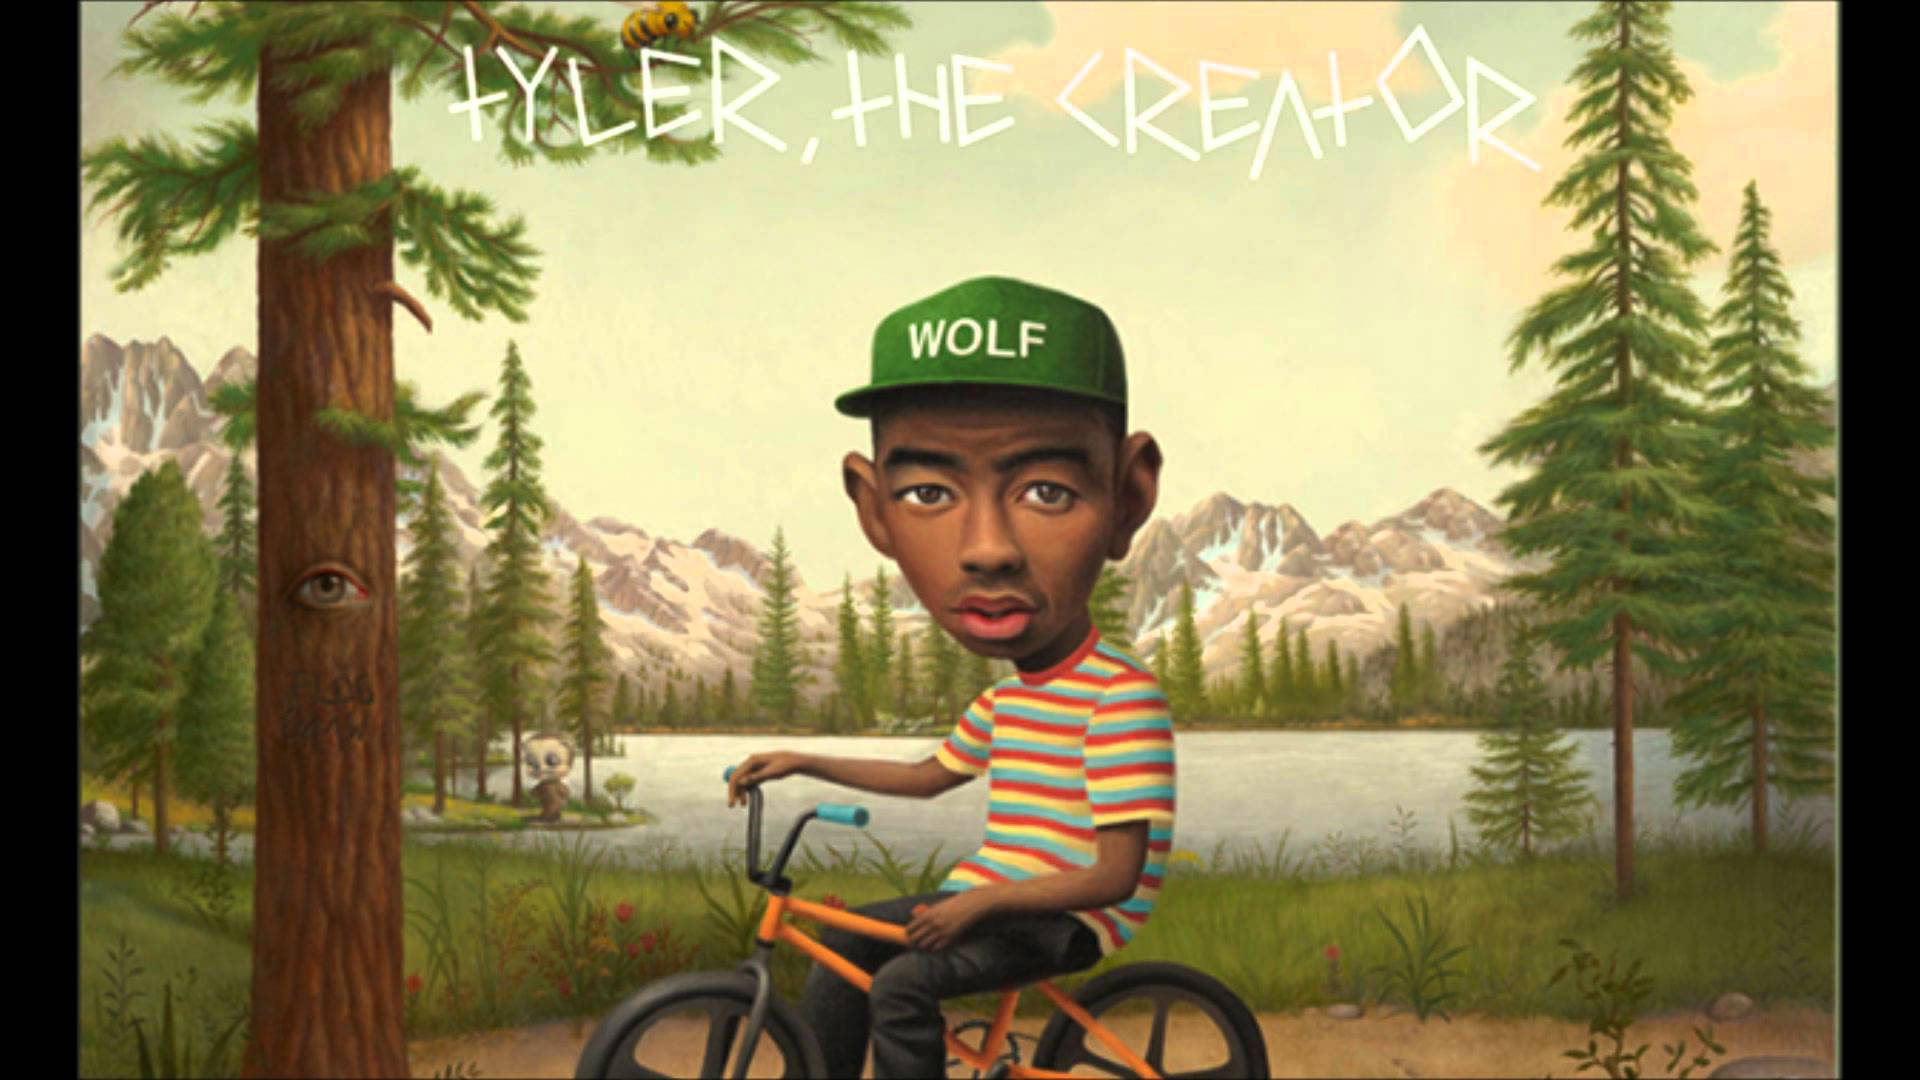 Free Download Tyler The Creator Domo Rap Wallpapers 1920x1080